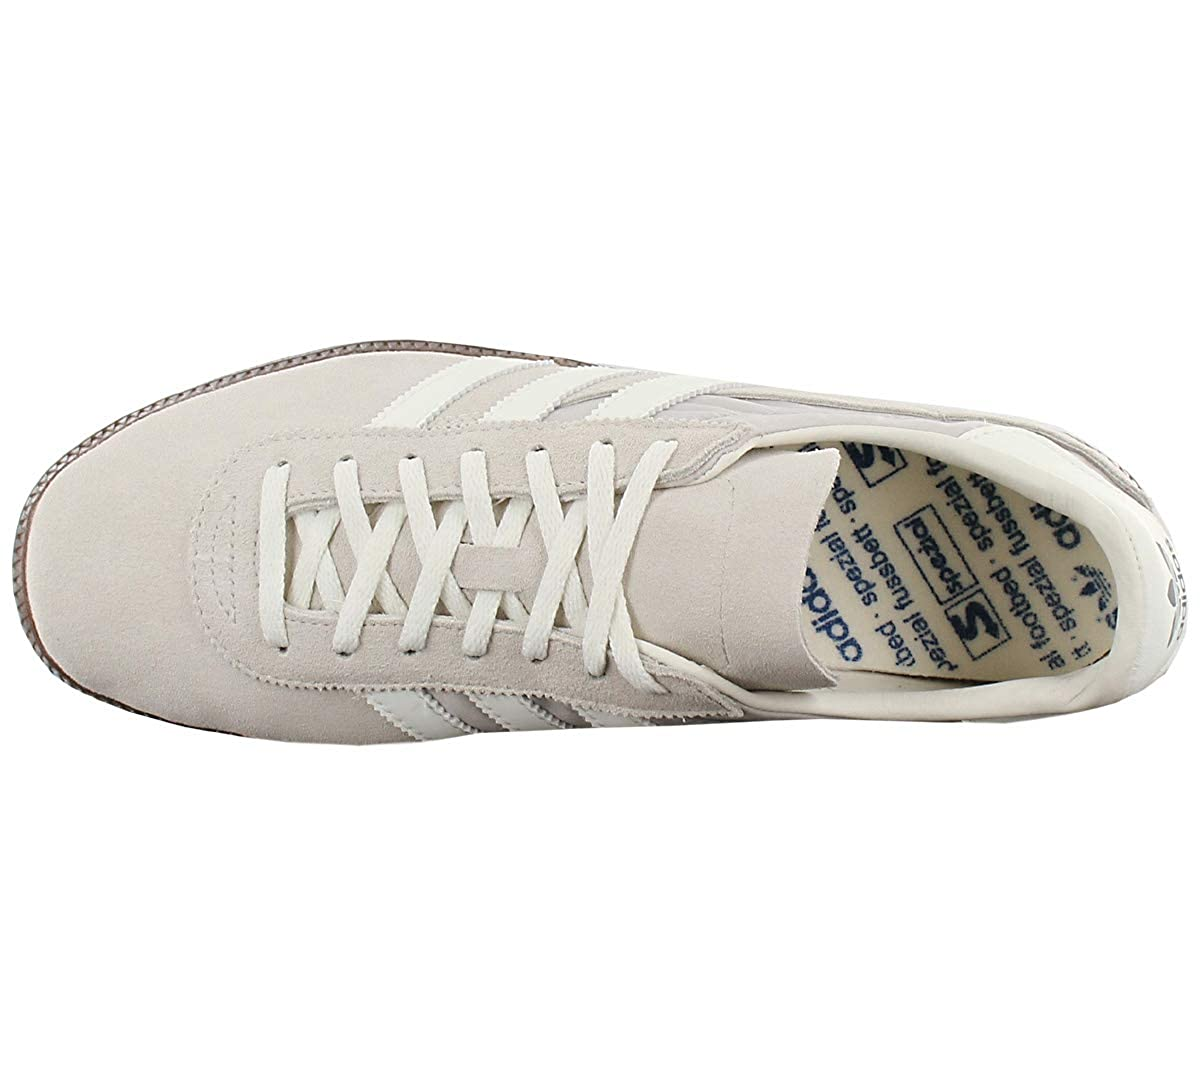 the best attitude 6d214 5bf72 adidas GT Wensley Spzl, Chaussures de Fitness Homme Amazon.fr Chaussures  et Sacs